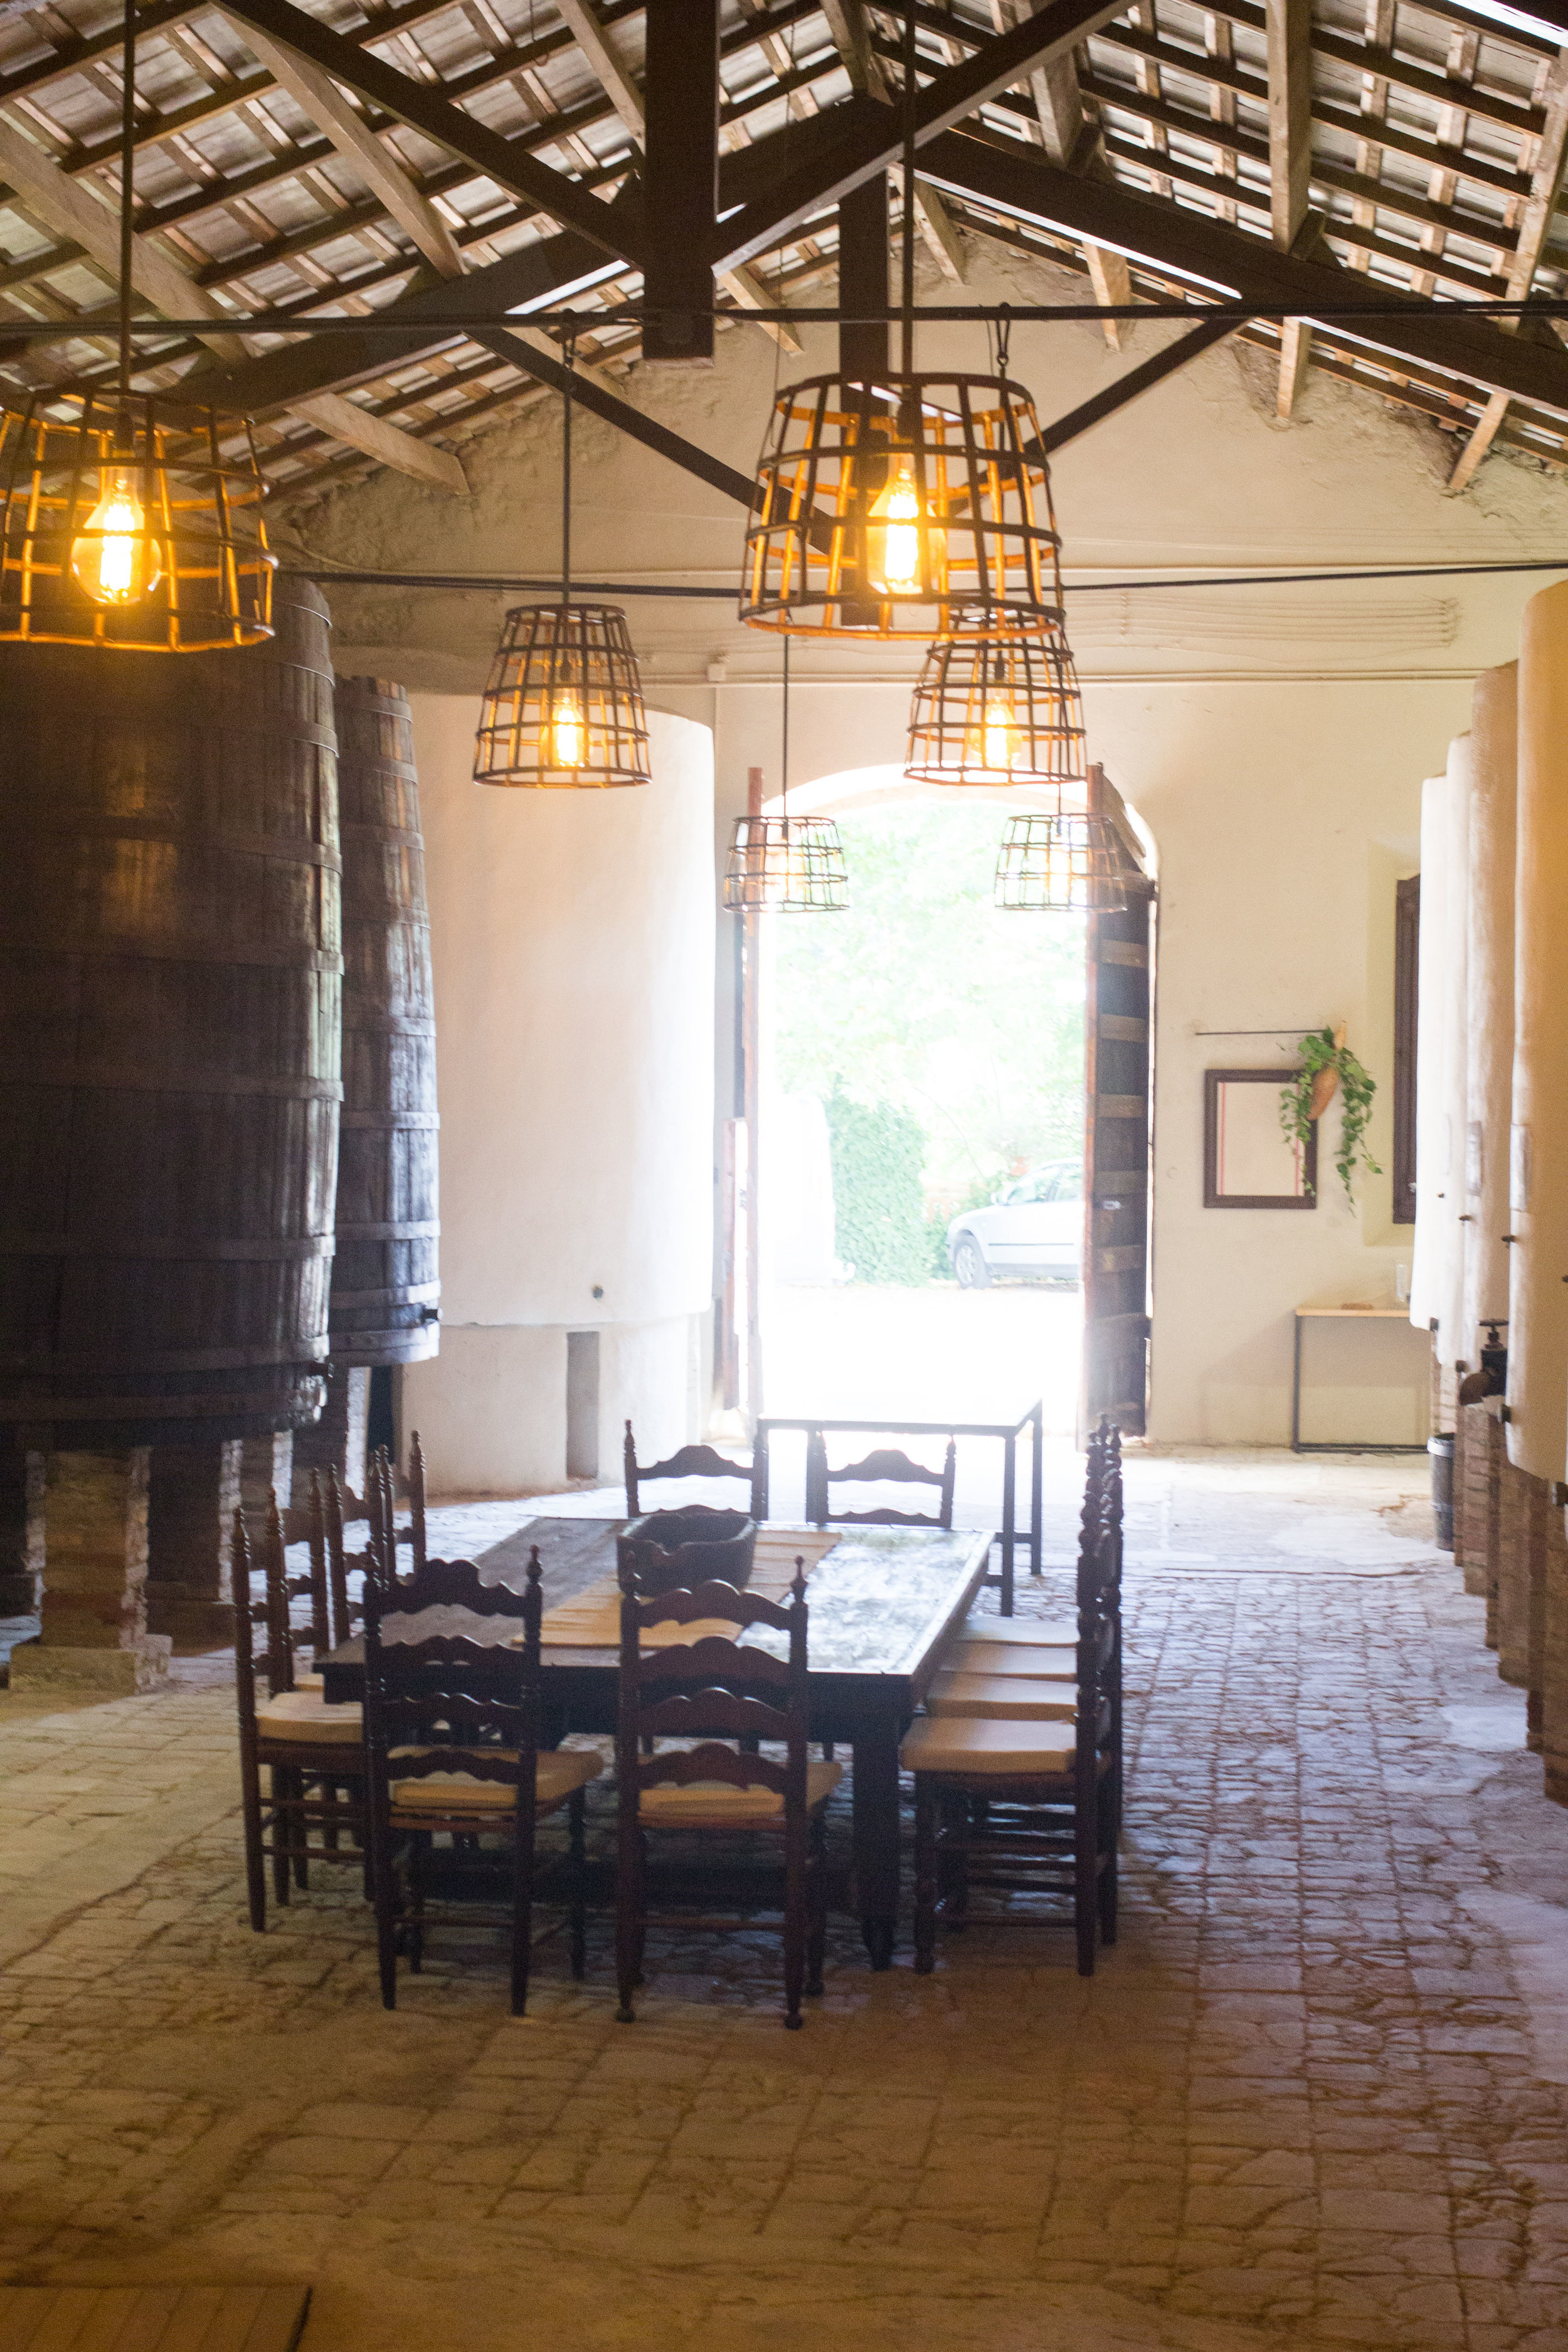 Sunlight floods the ambient wine cellar room with original stone floor